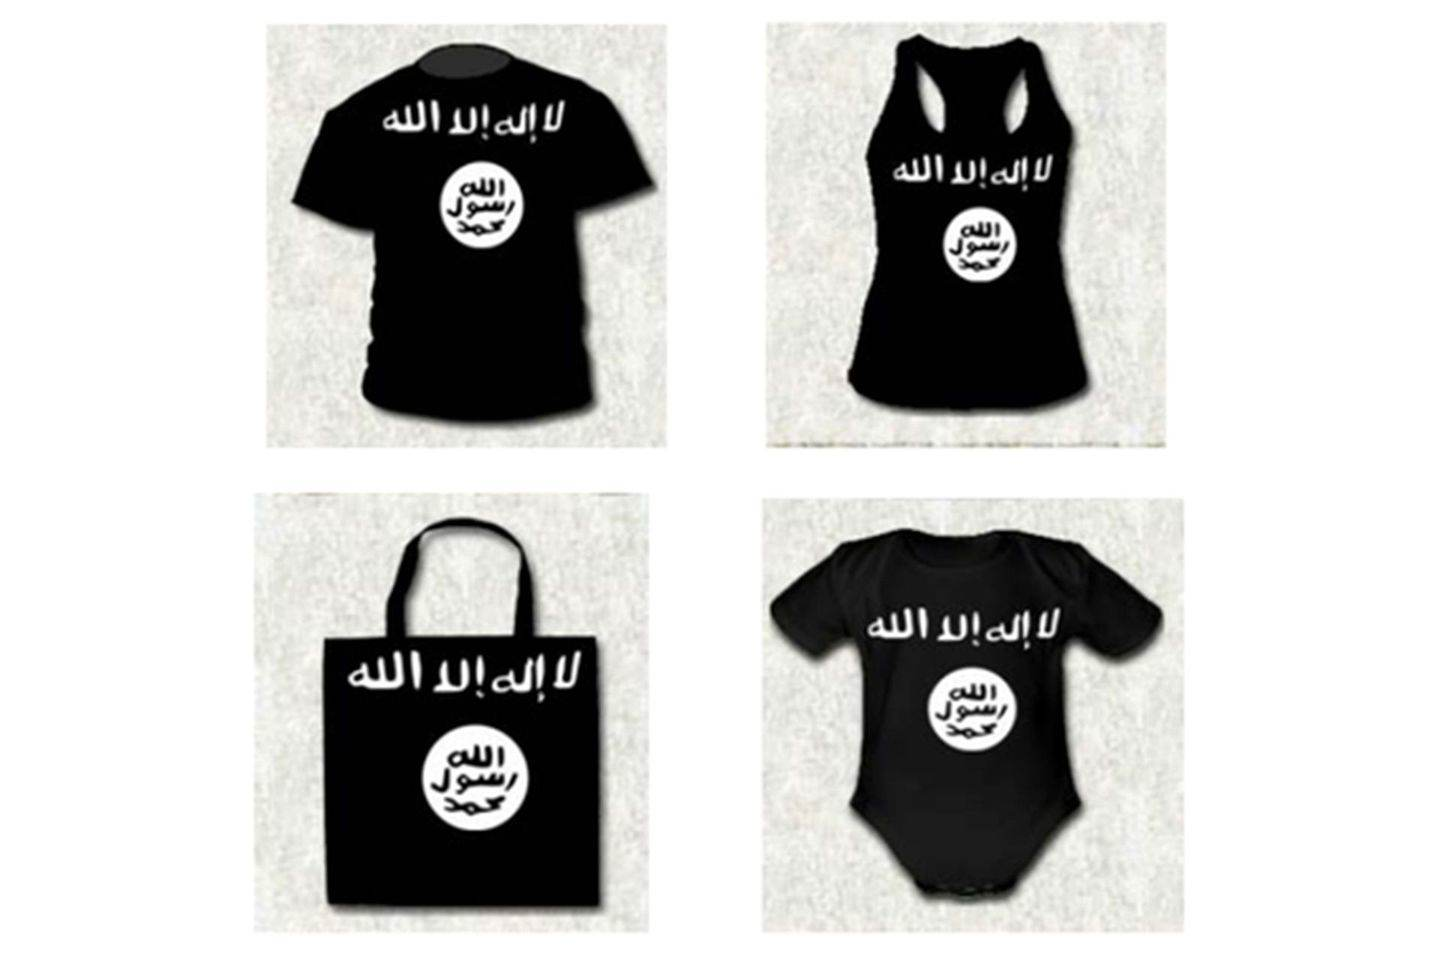 ISIS, controversial garments, t-shirt, tote bag, vest